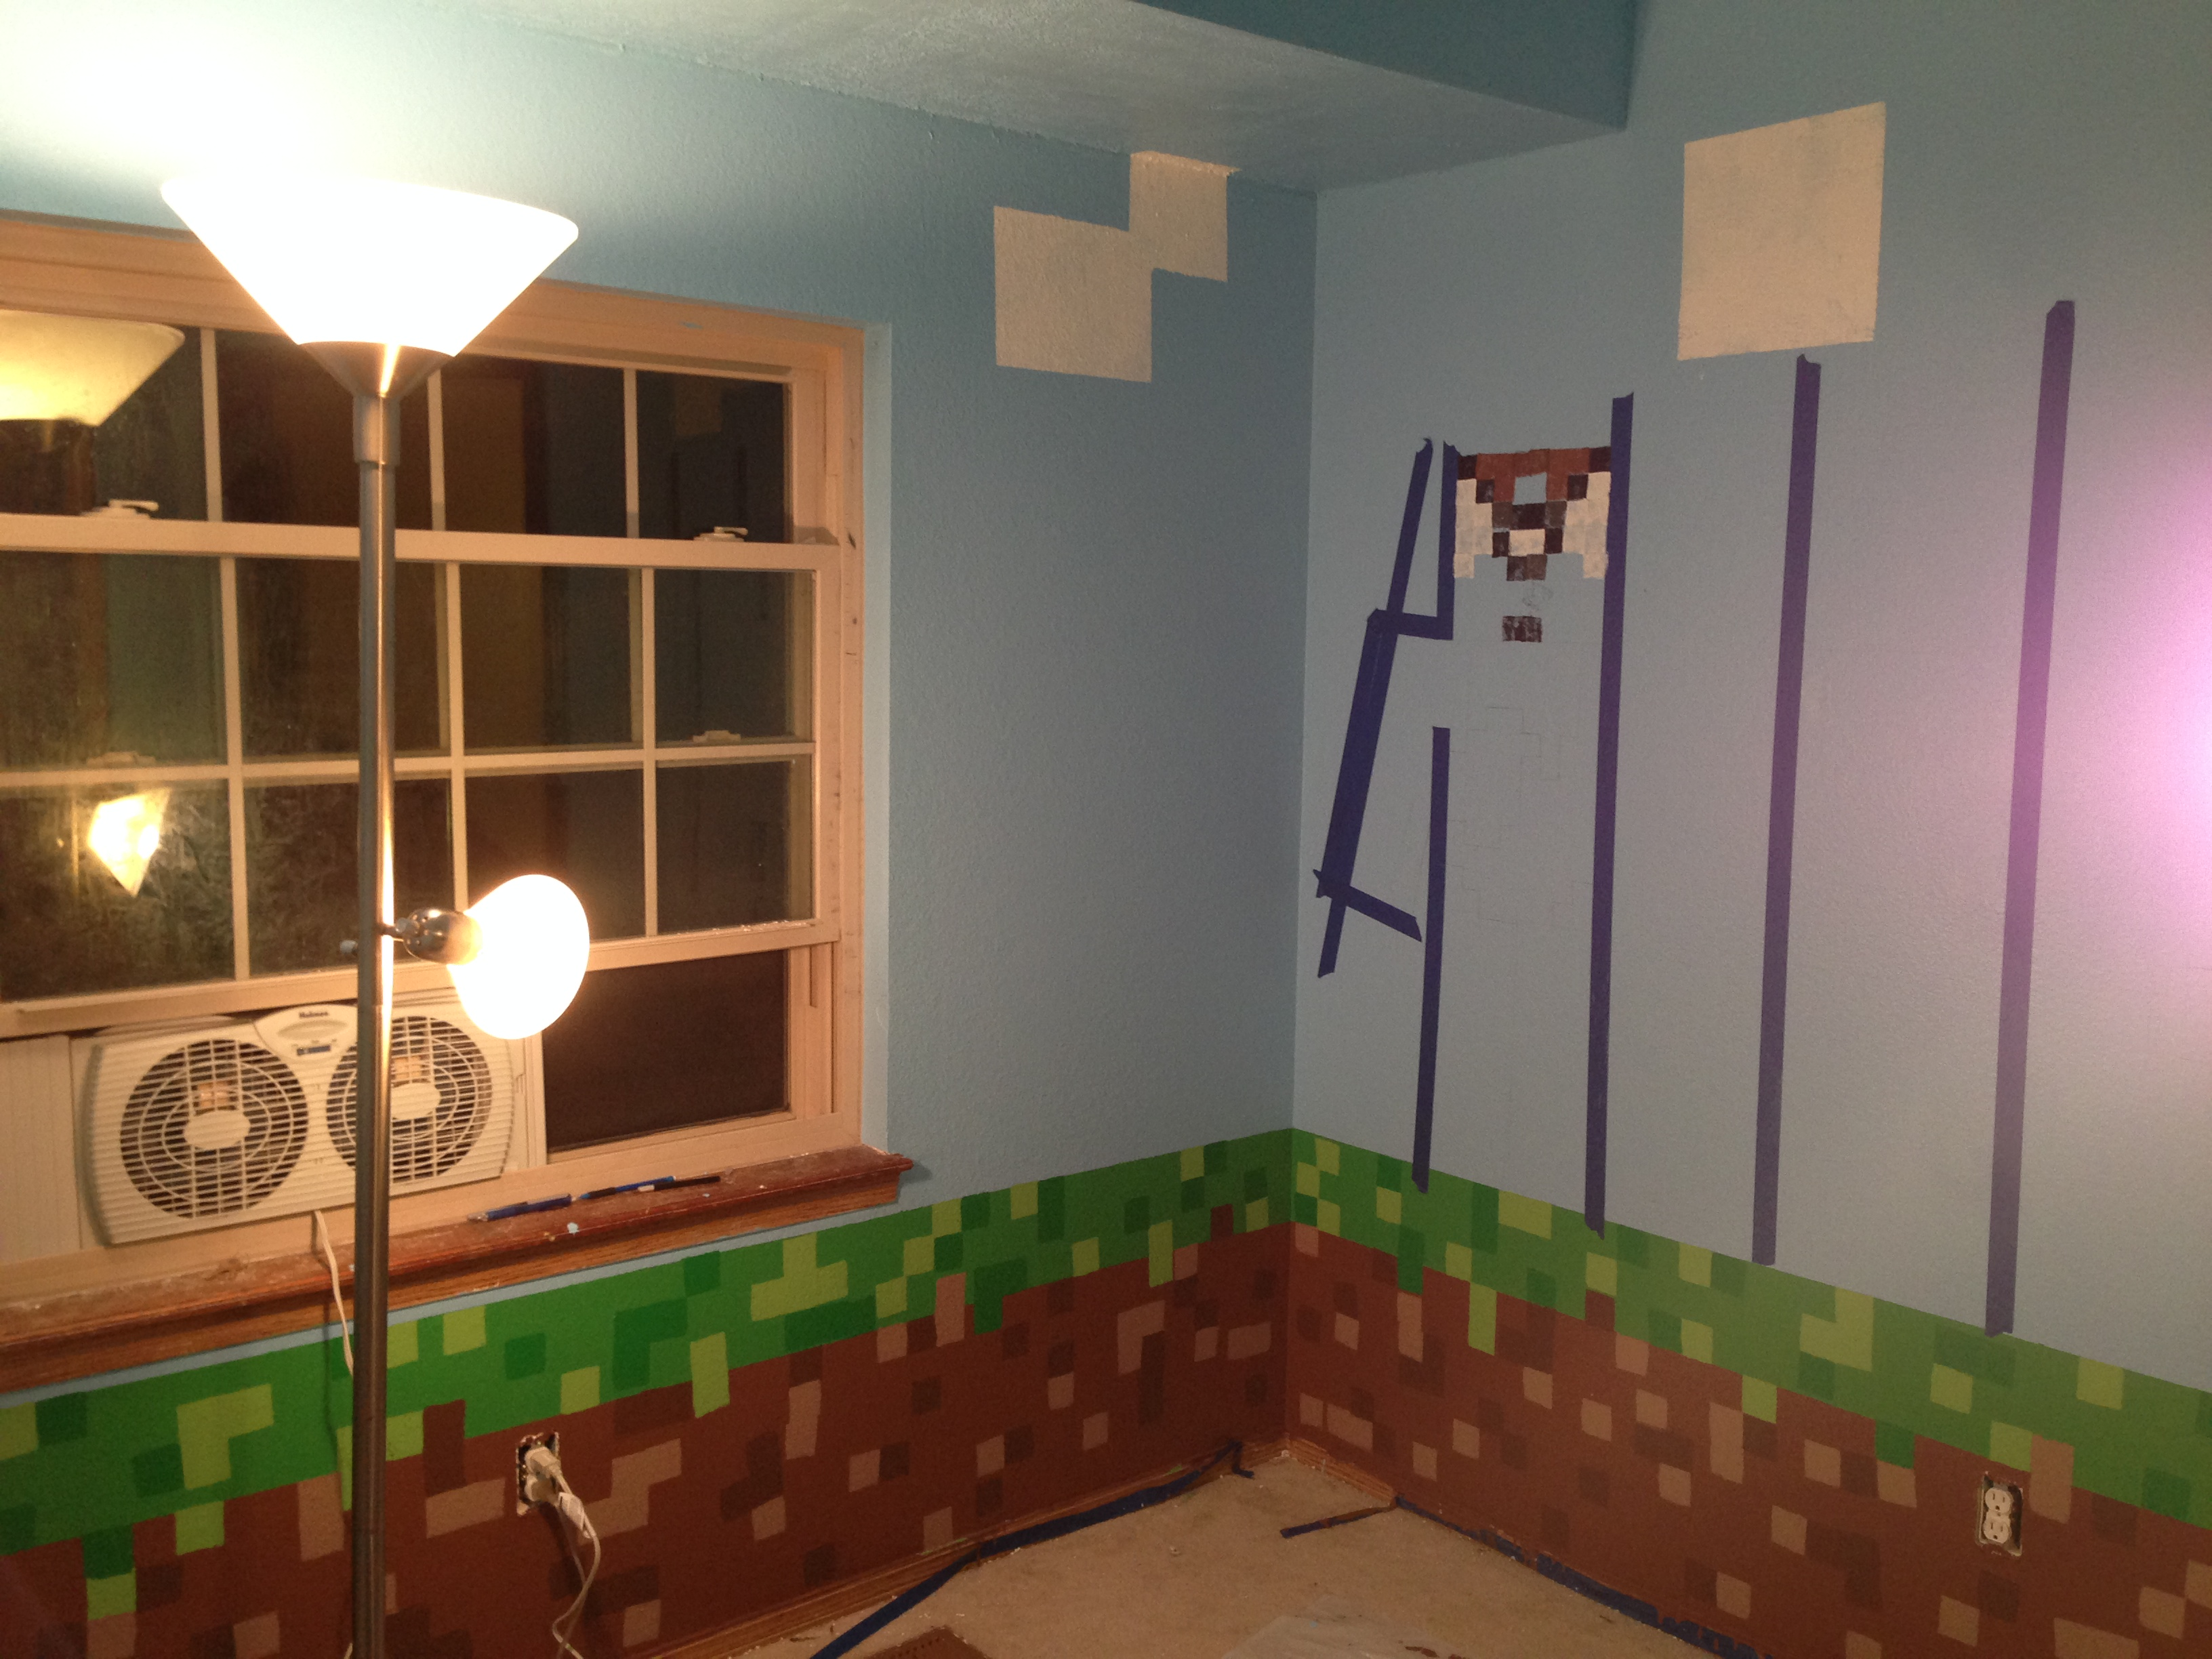 Minecraft Themed Bedroom Wallpaper Minecraft Themed Bedroom 3264x2448